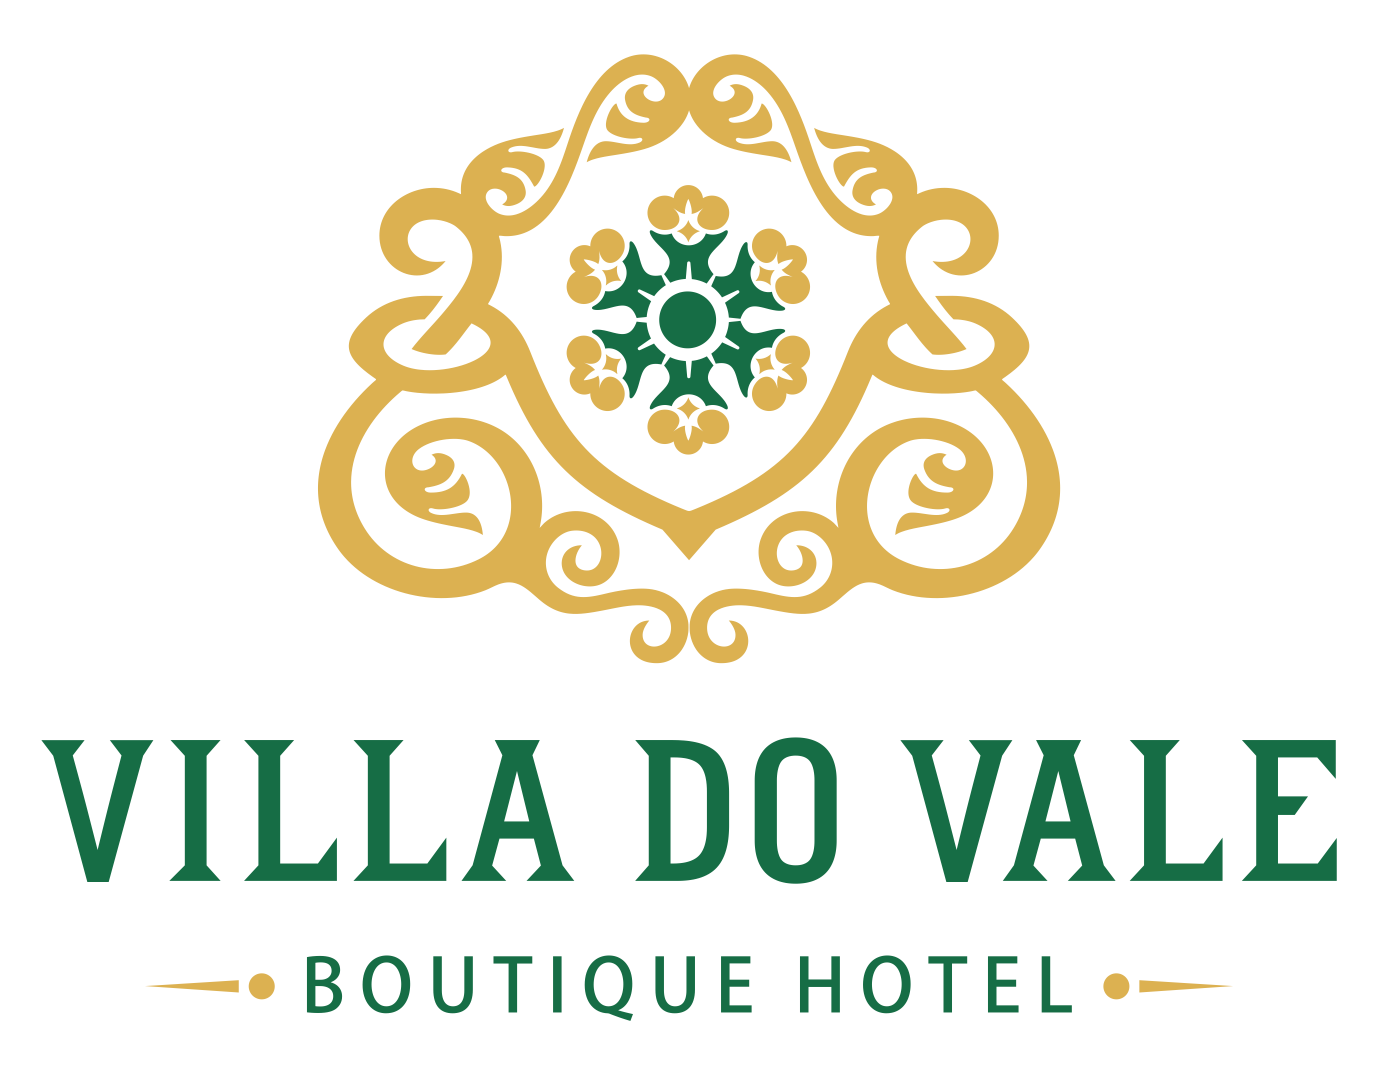 Suíte Pool | Villa do Vale Boutique Hotel